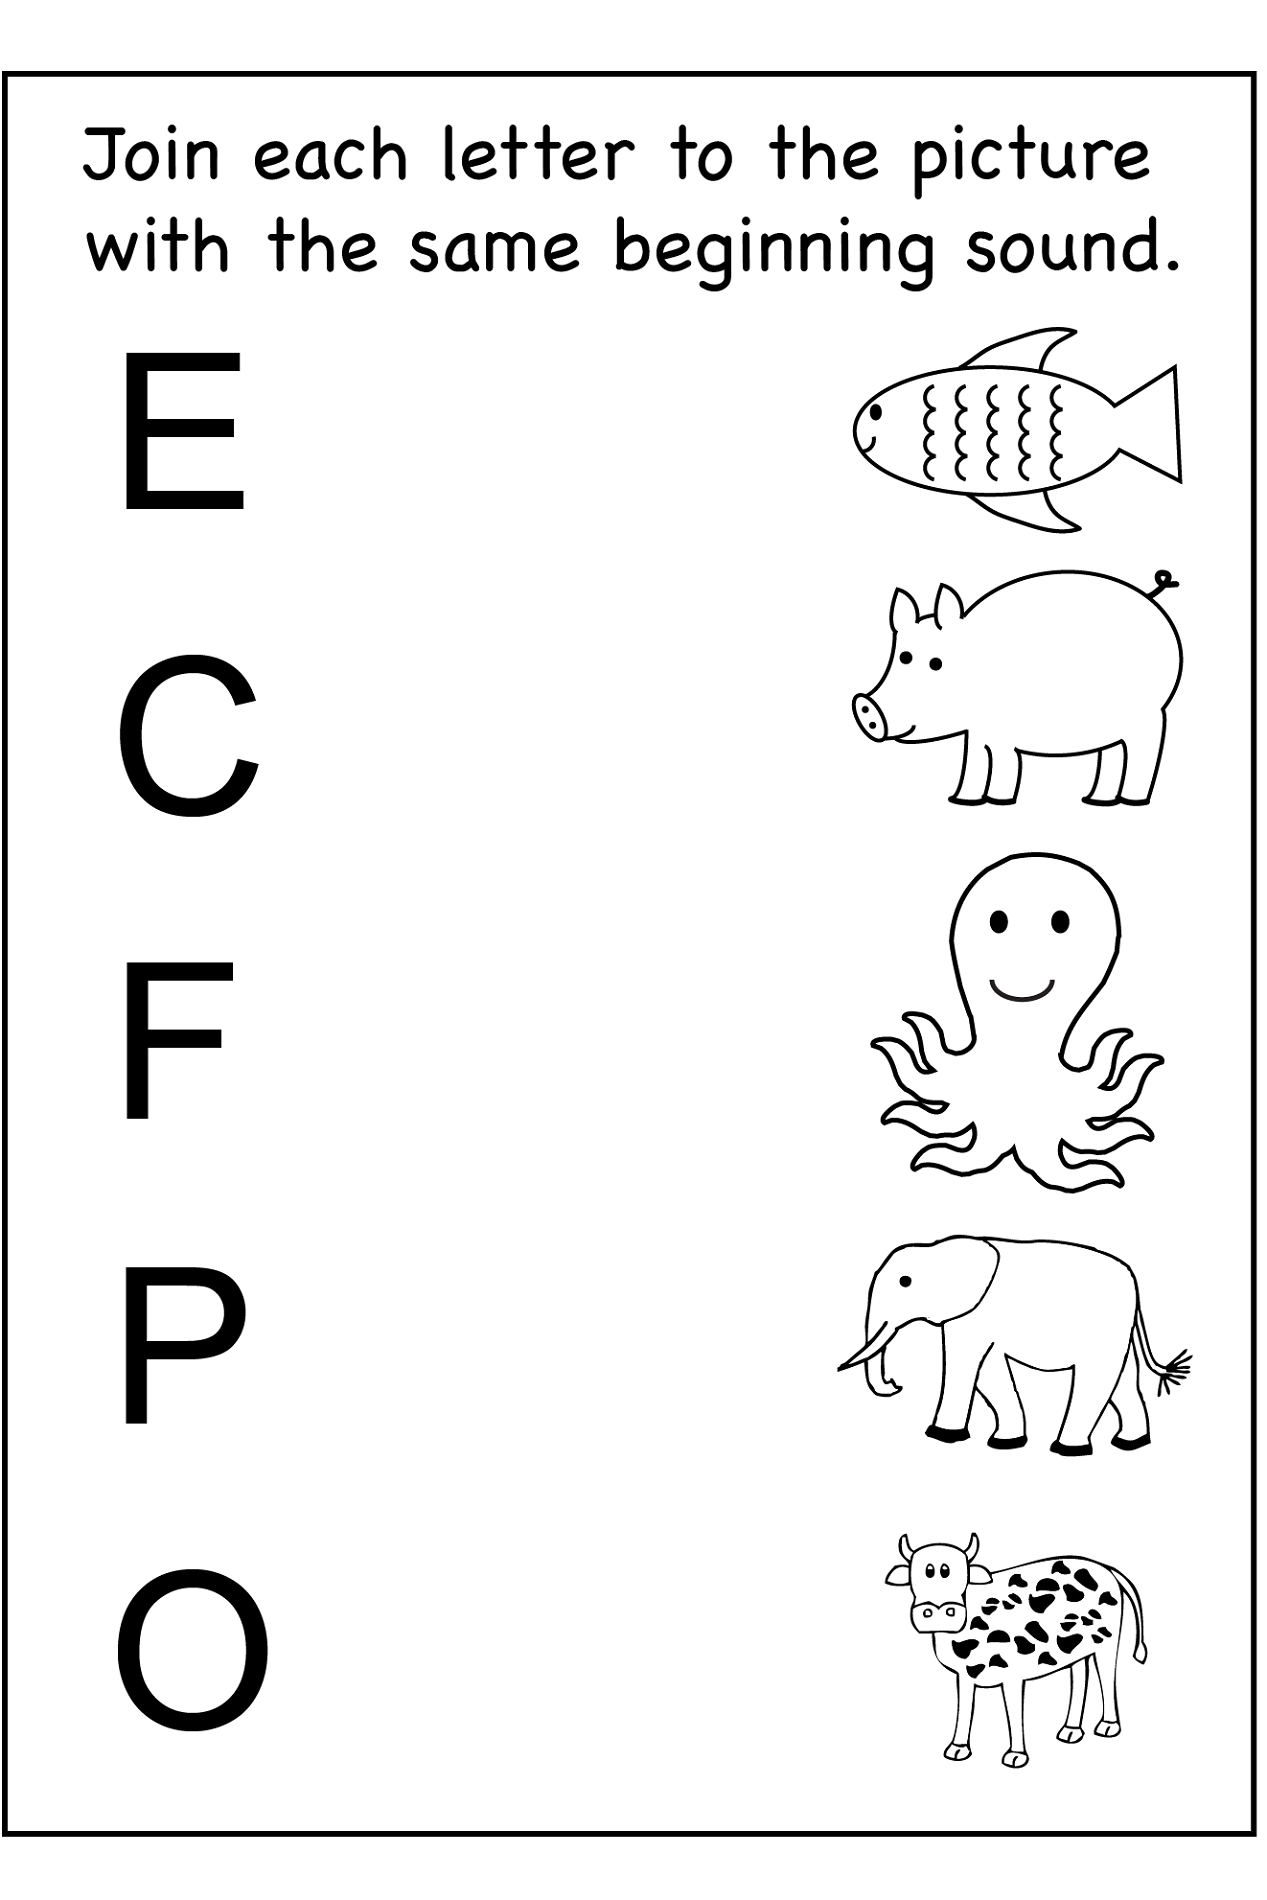 Printable Alphabet Activities For Kids